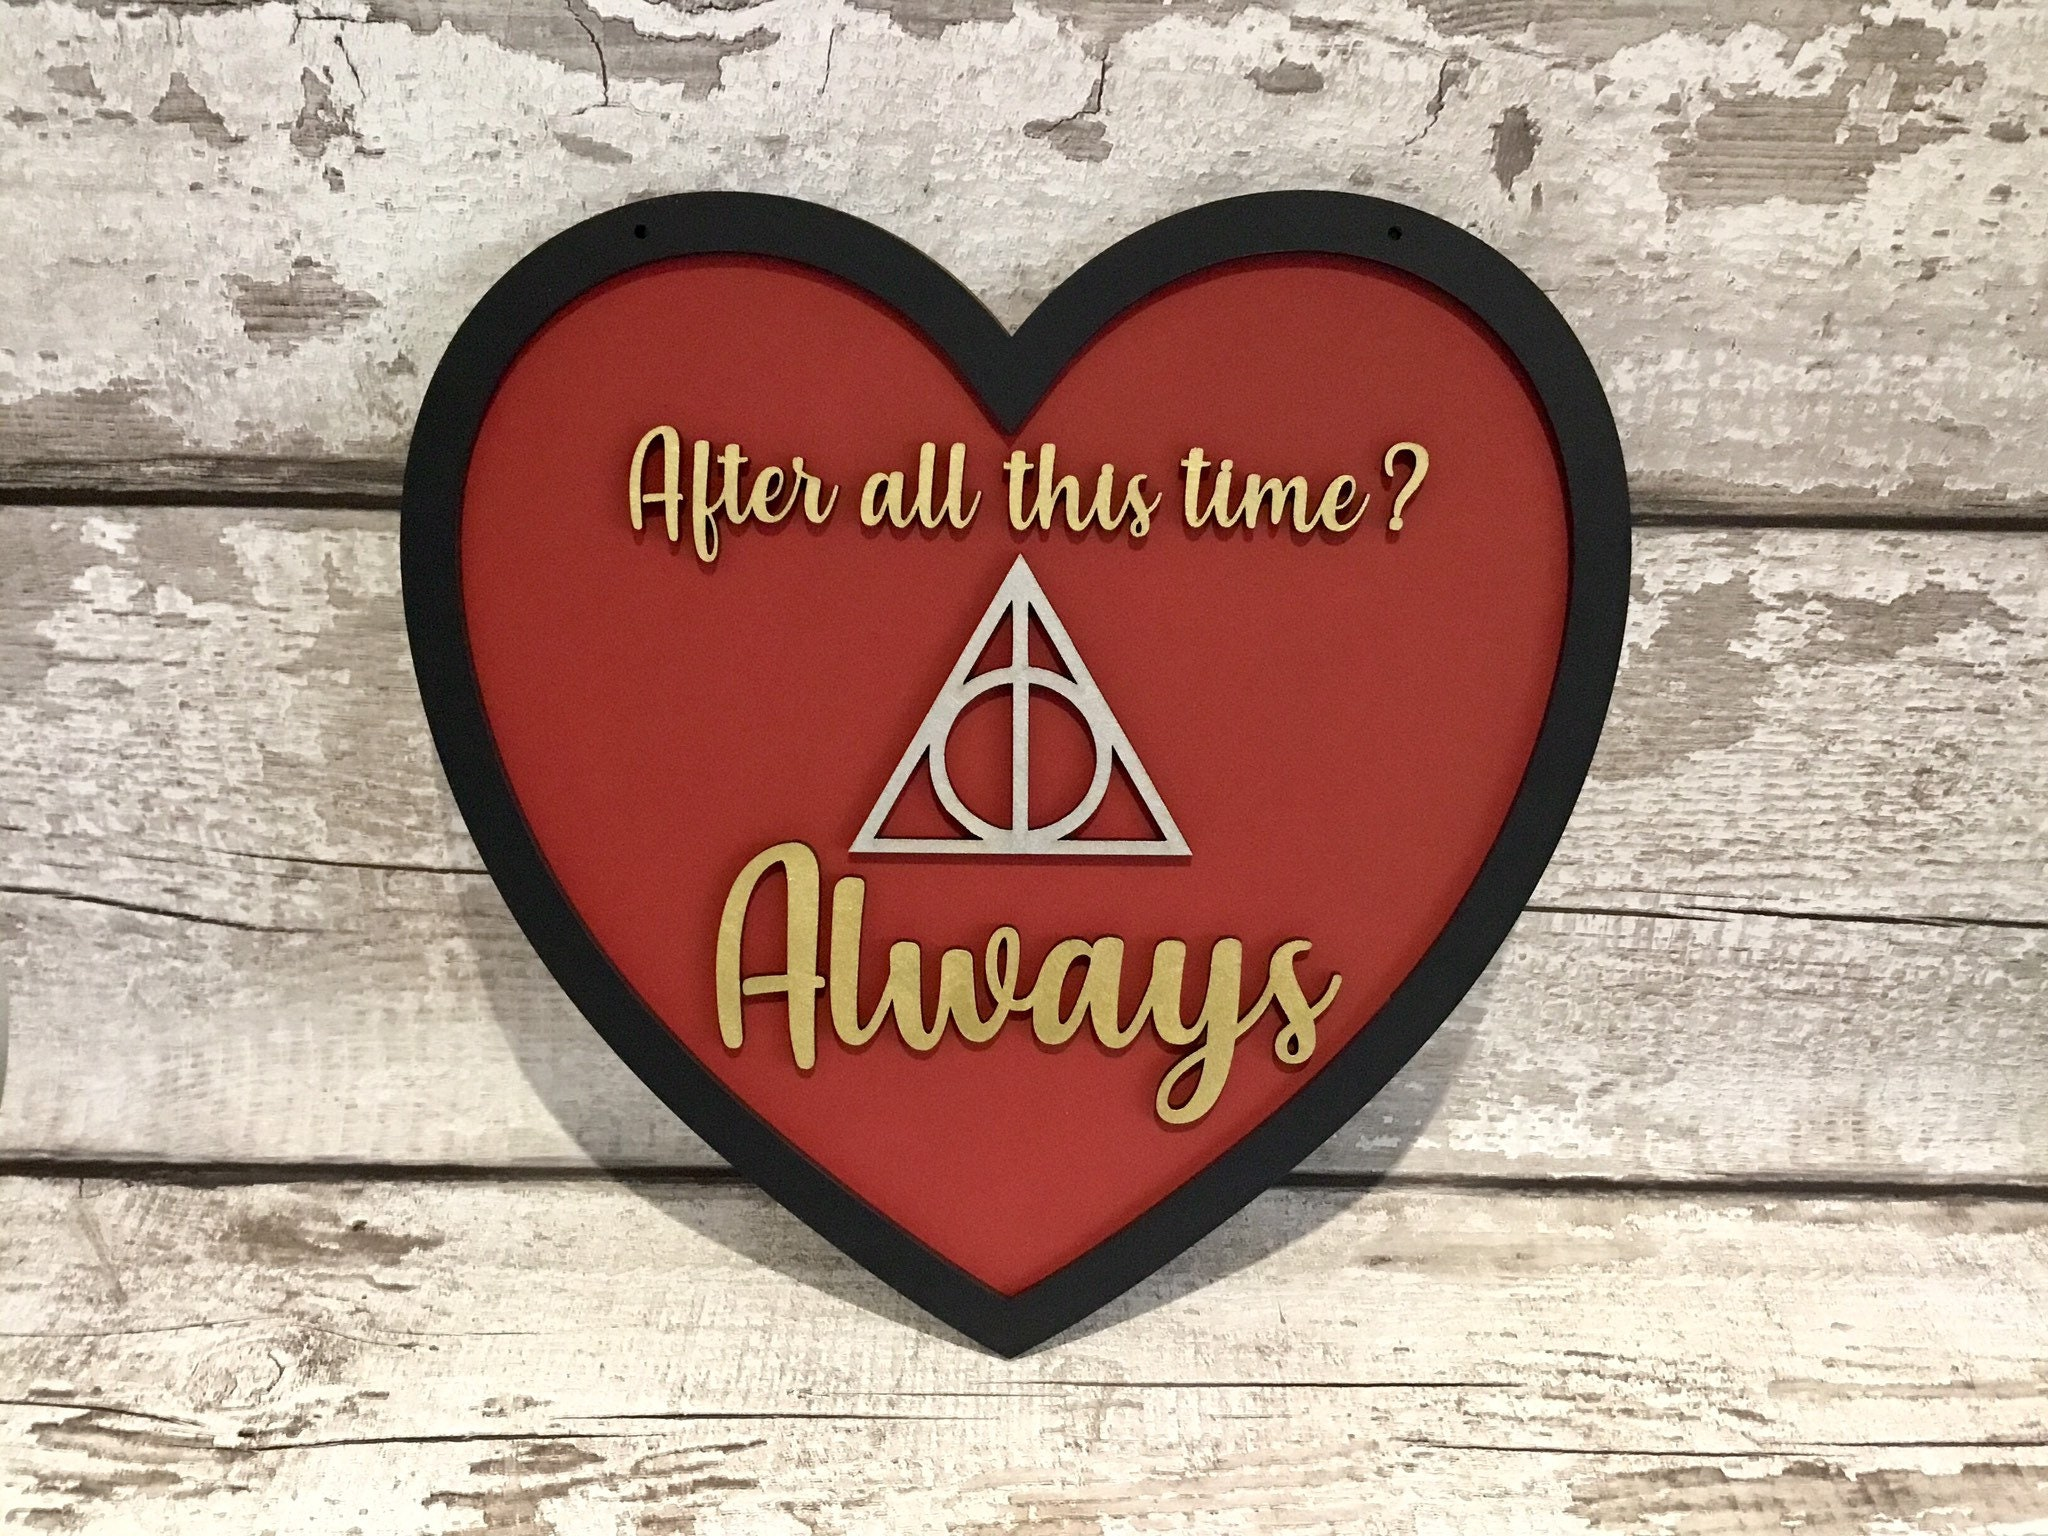 Harry Potter Professor Snape Quote After All This Time Always